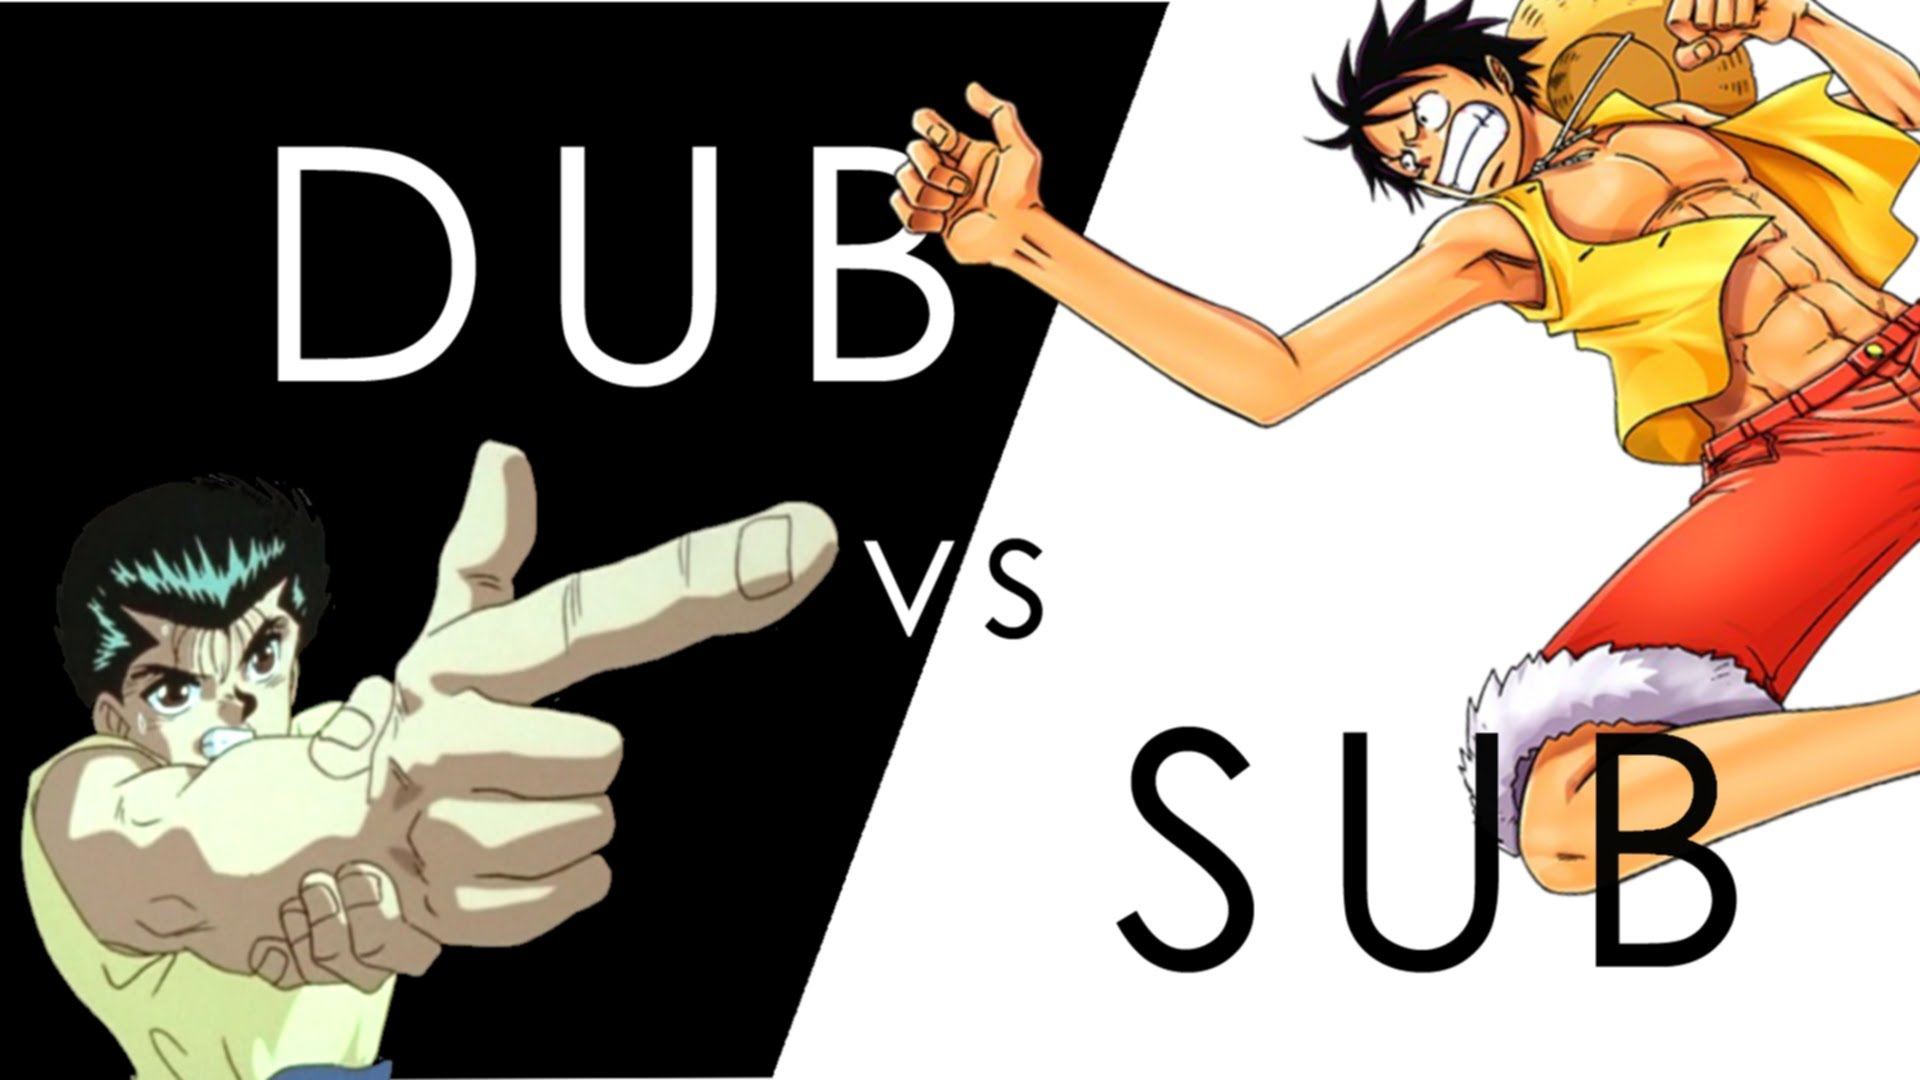 Are you a sub or a dub